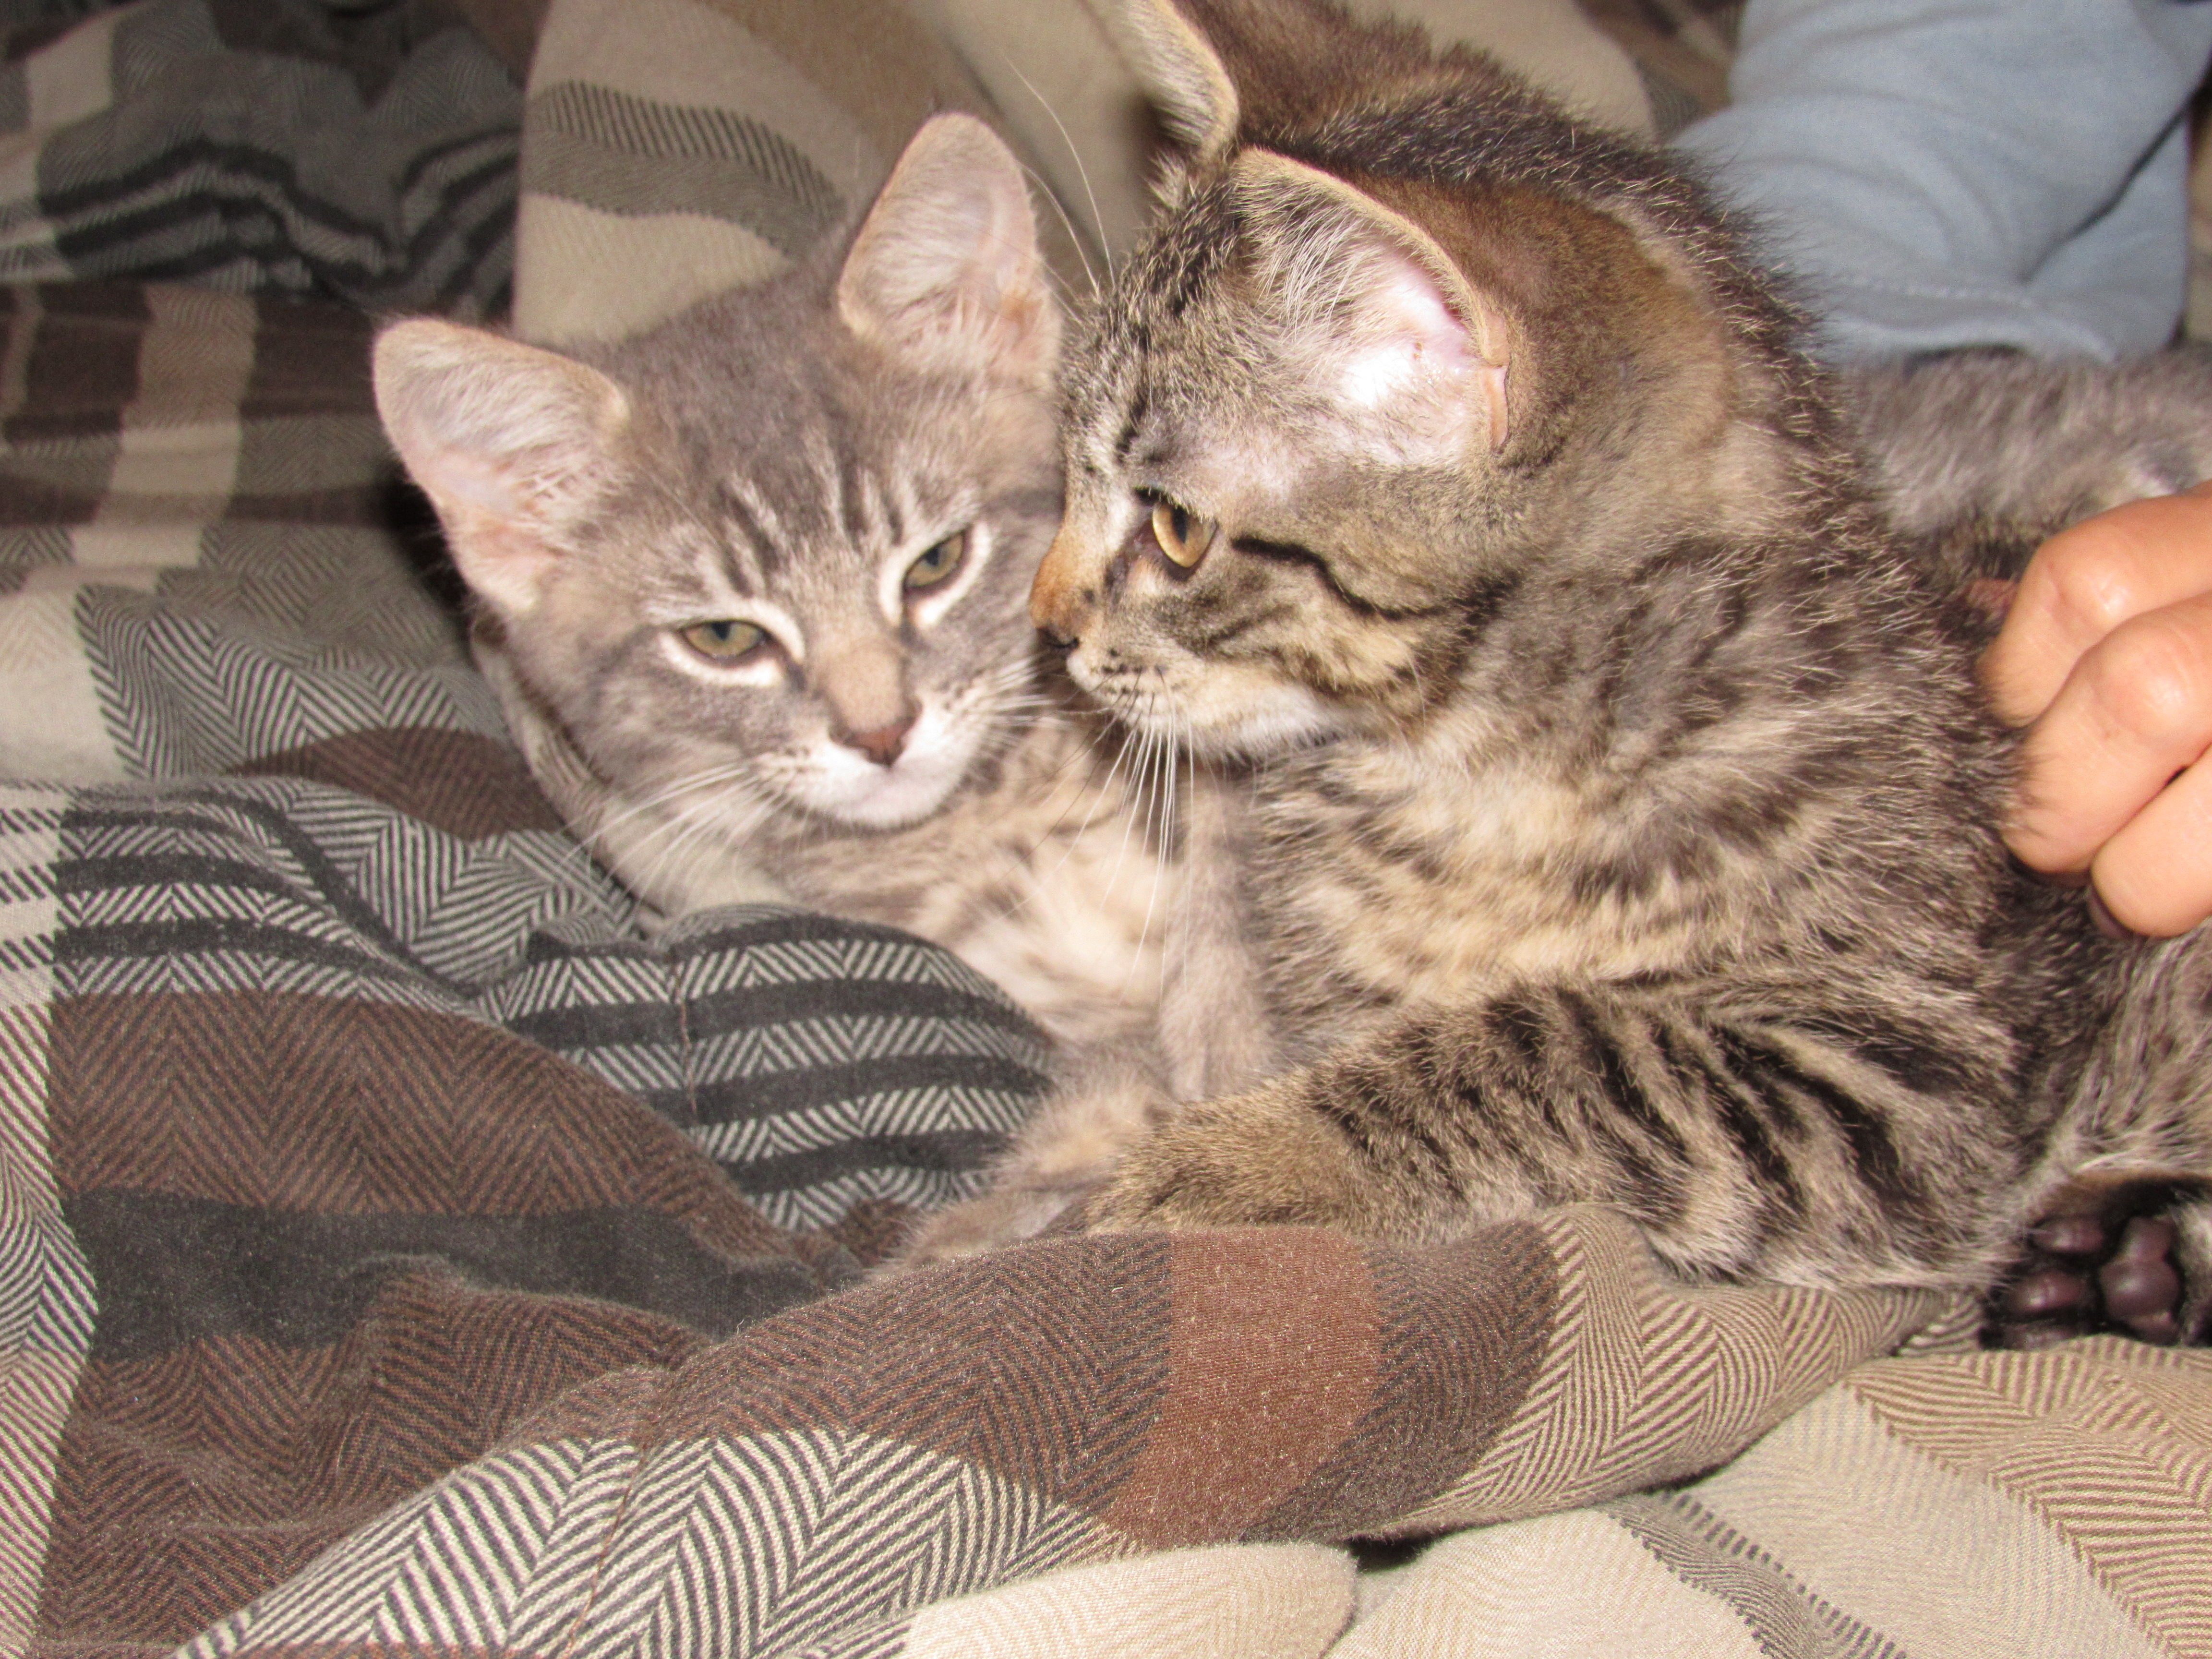 My Brand New Kittens Duke & Daisy (Cuteness Overload)